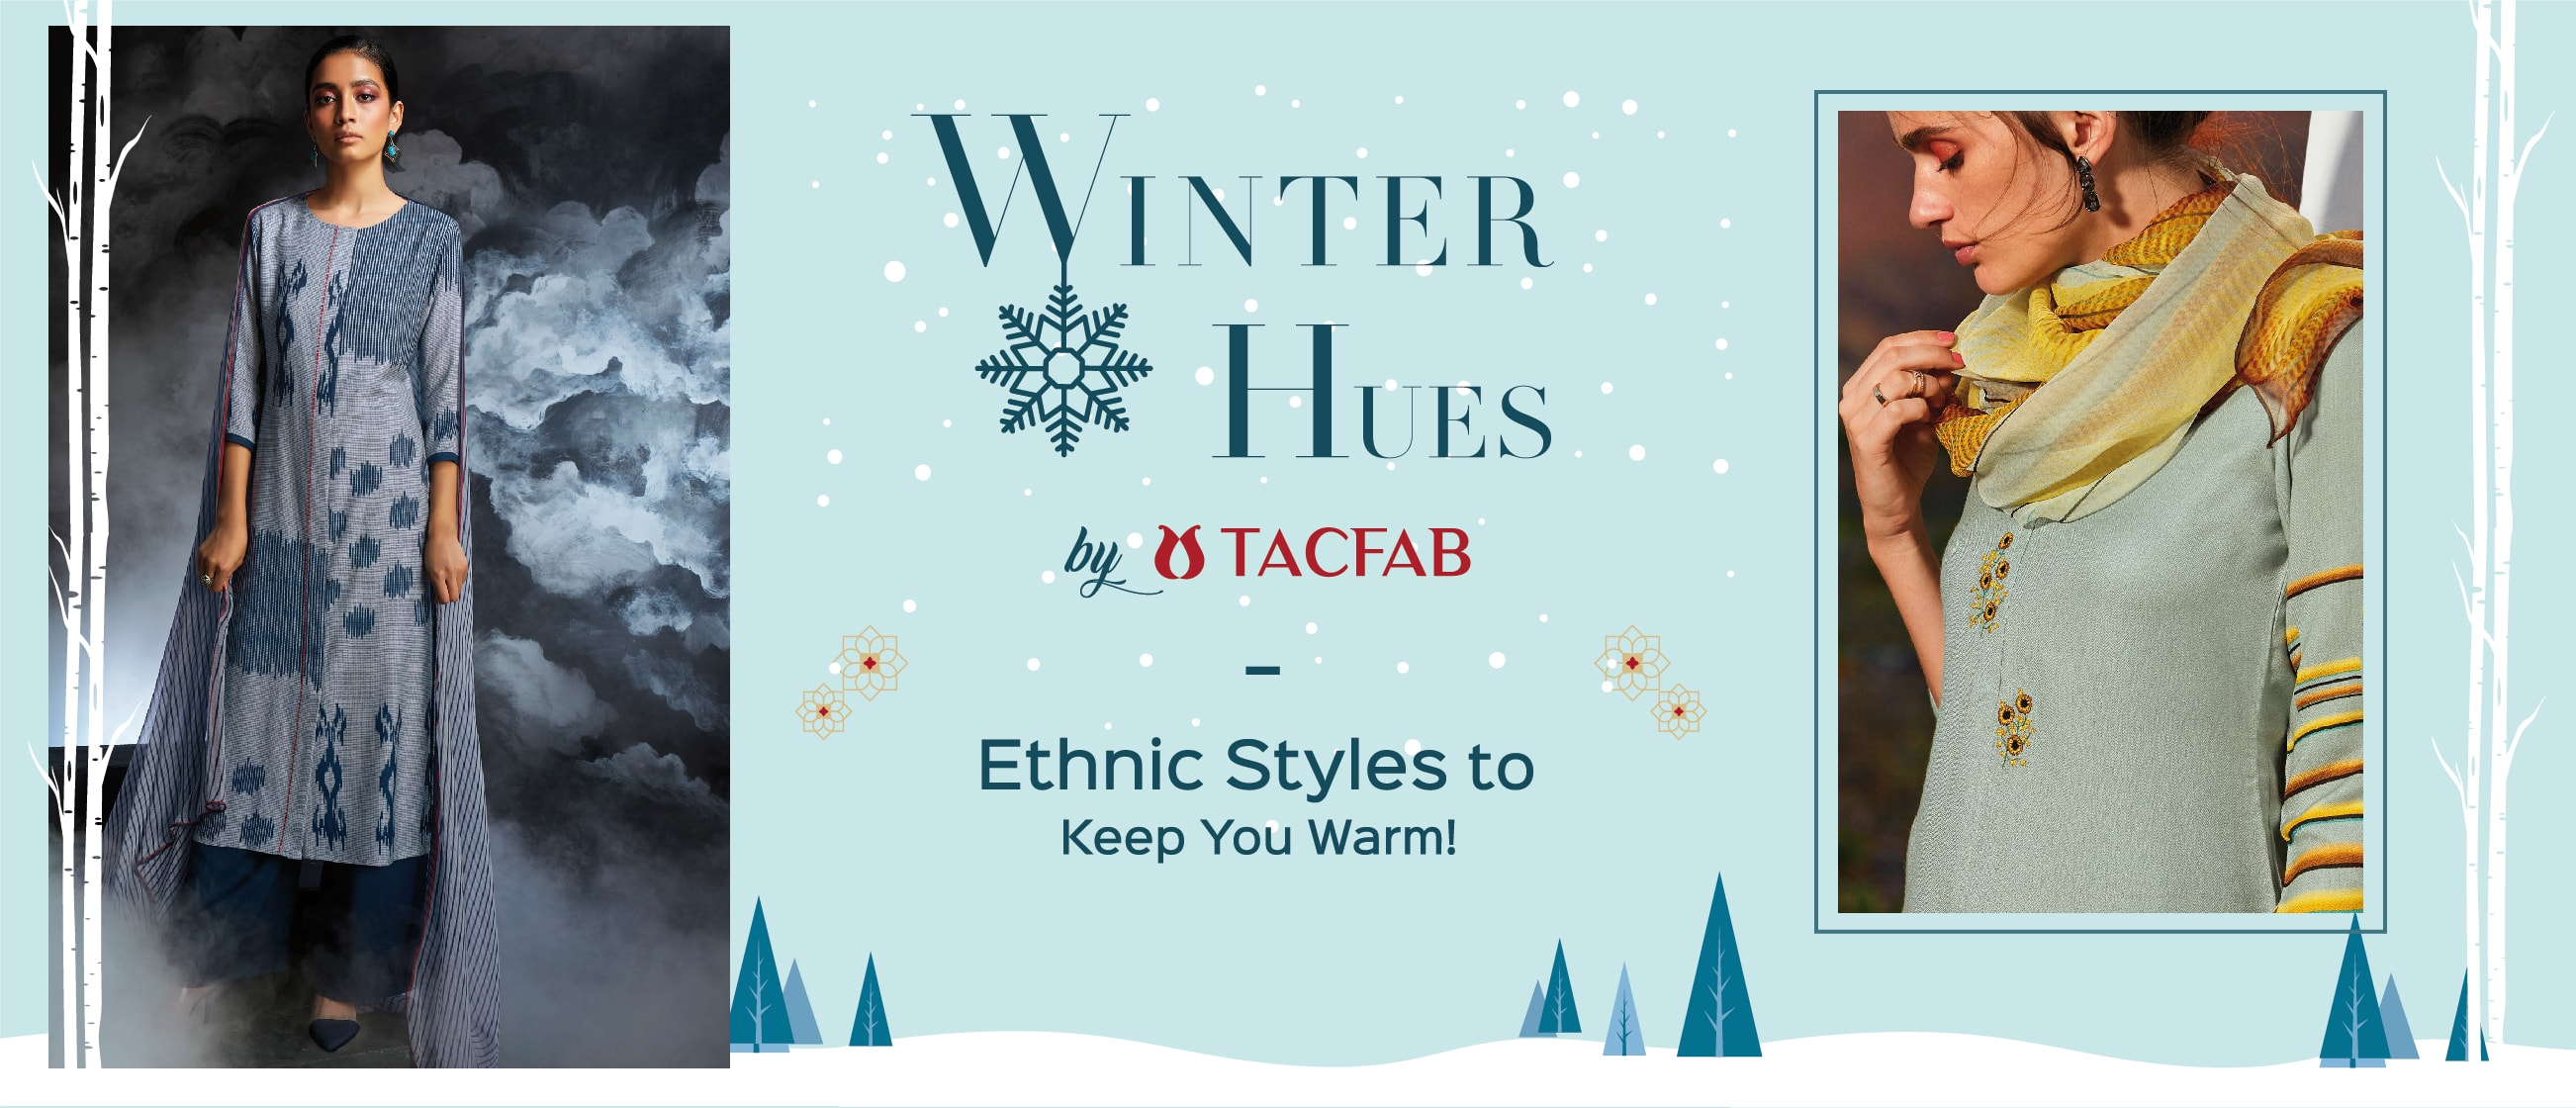 Tacfab's New Winter Collection has Something for Everyone